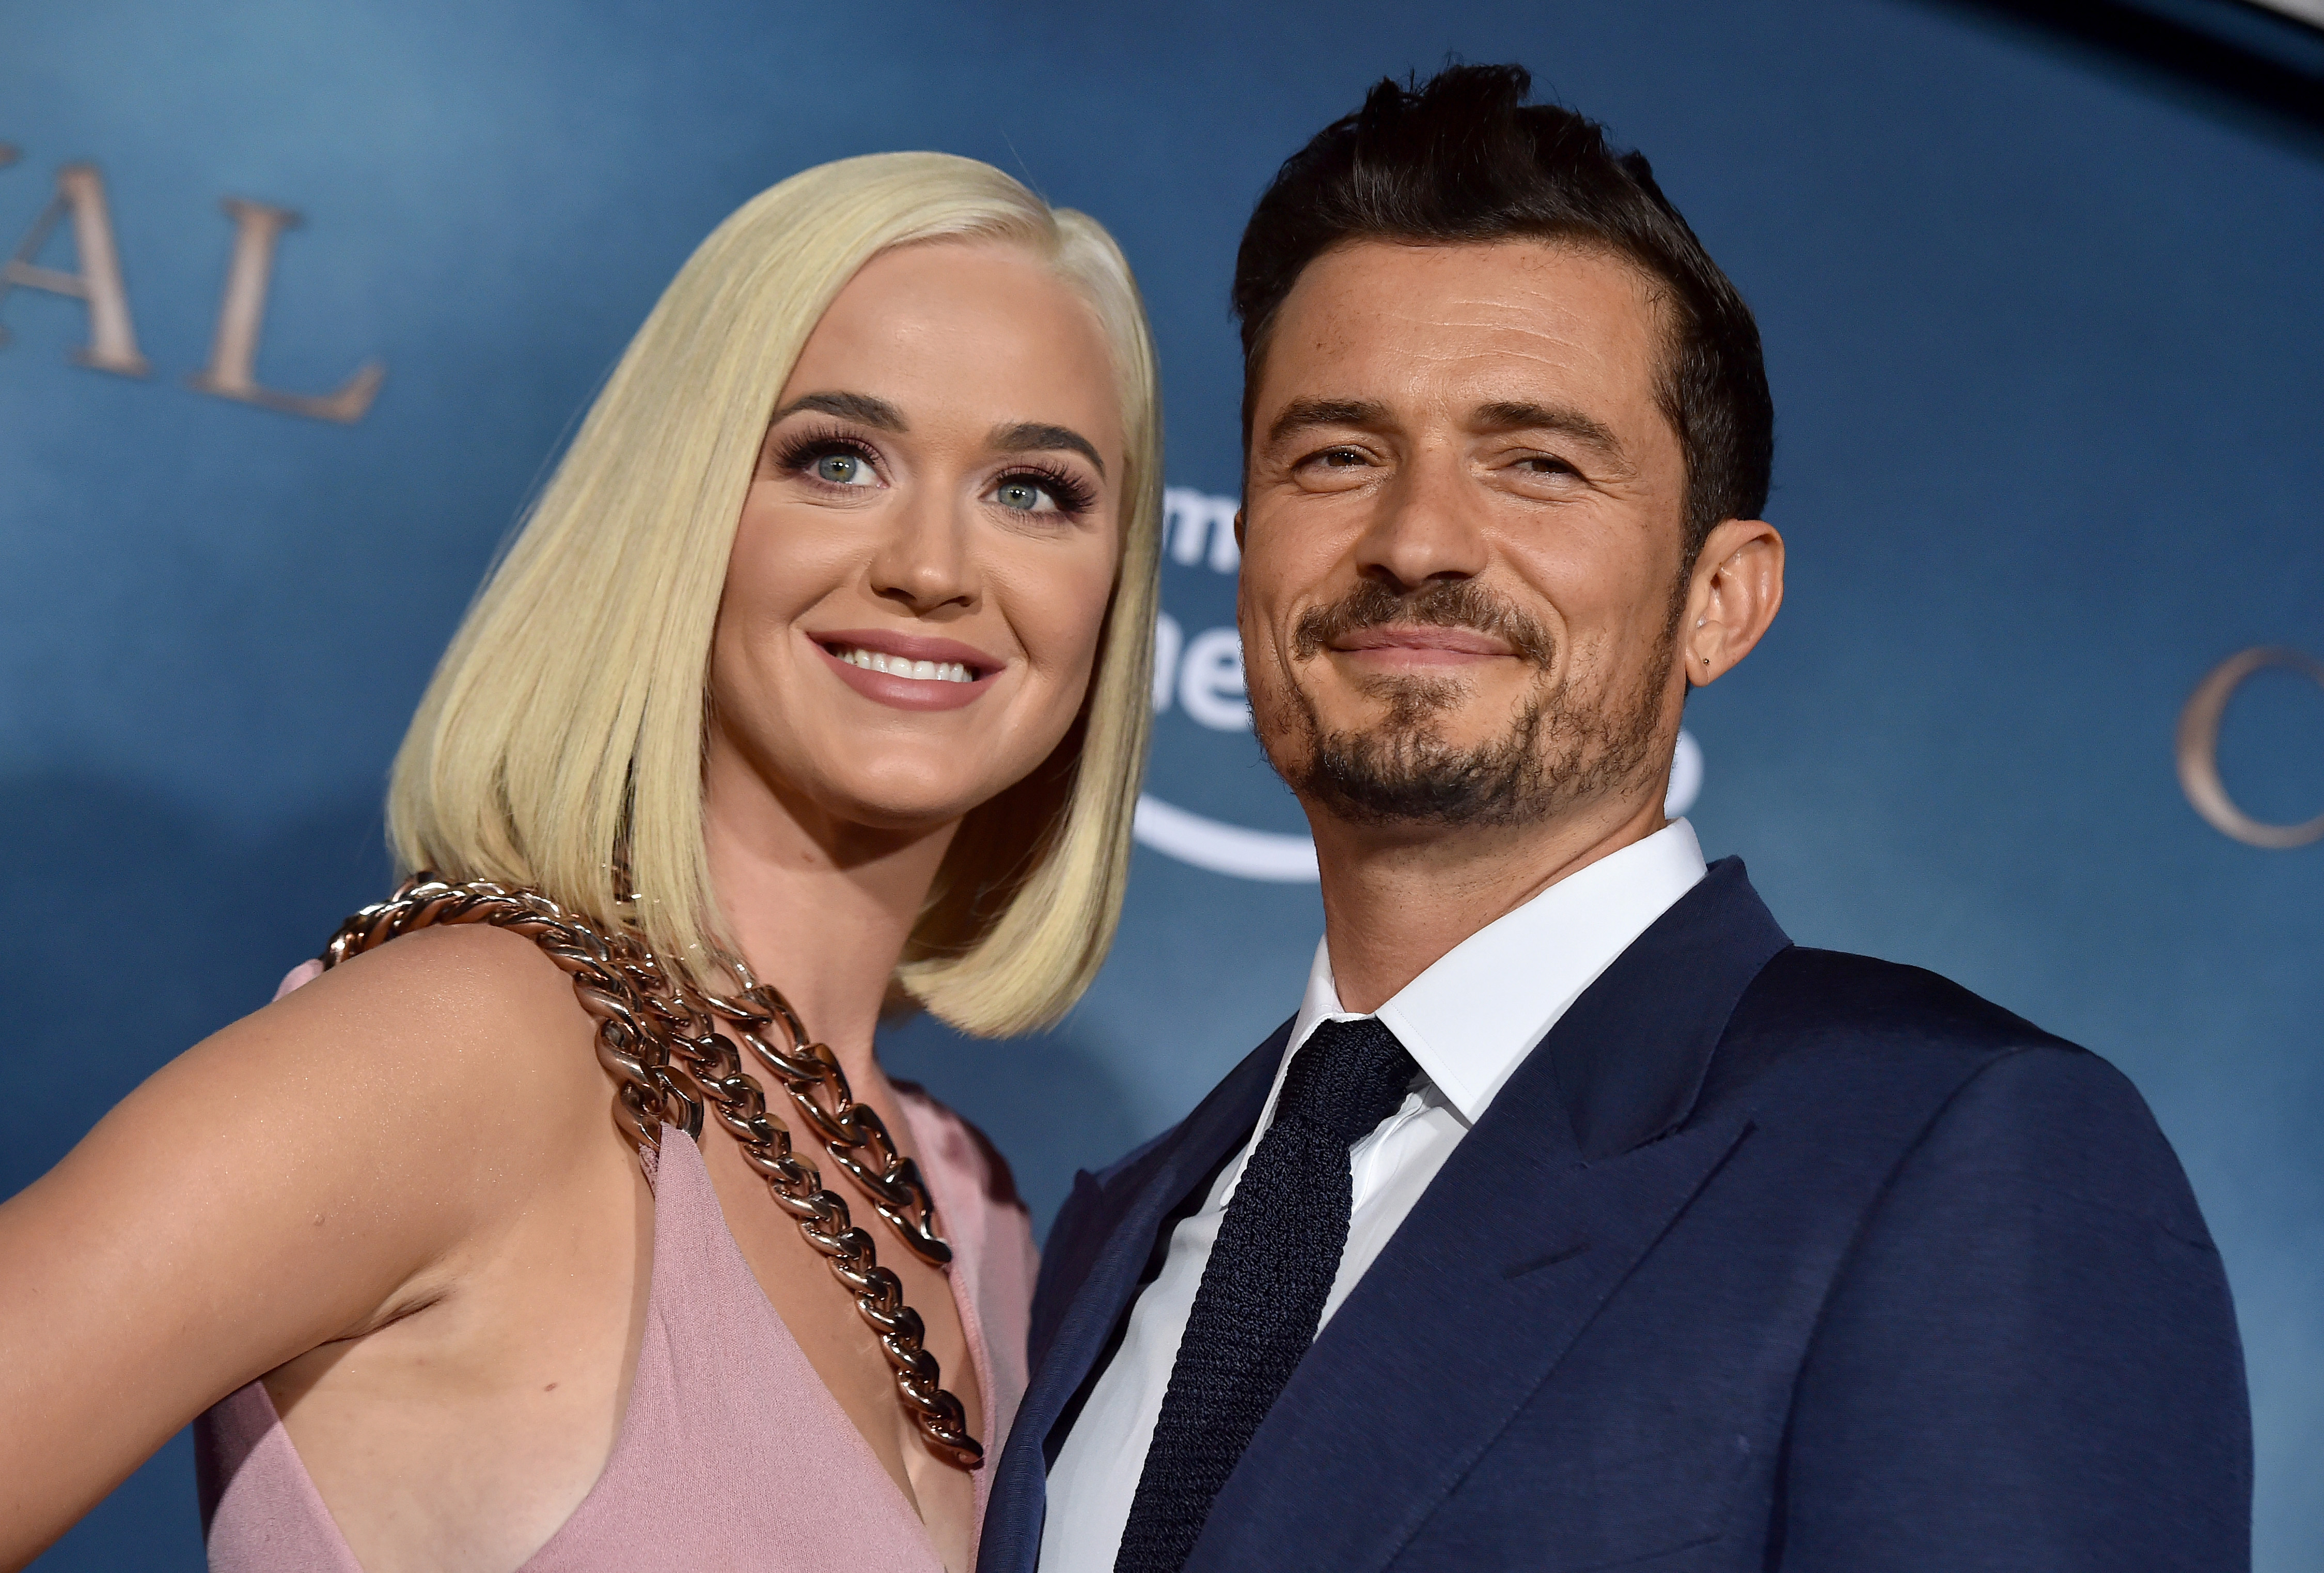 Katy and Orlando Bloom welcomed their daughter in 2020